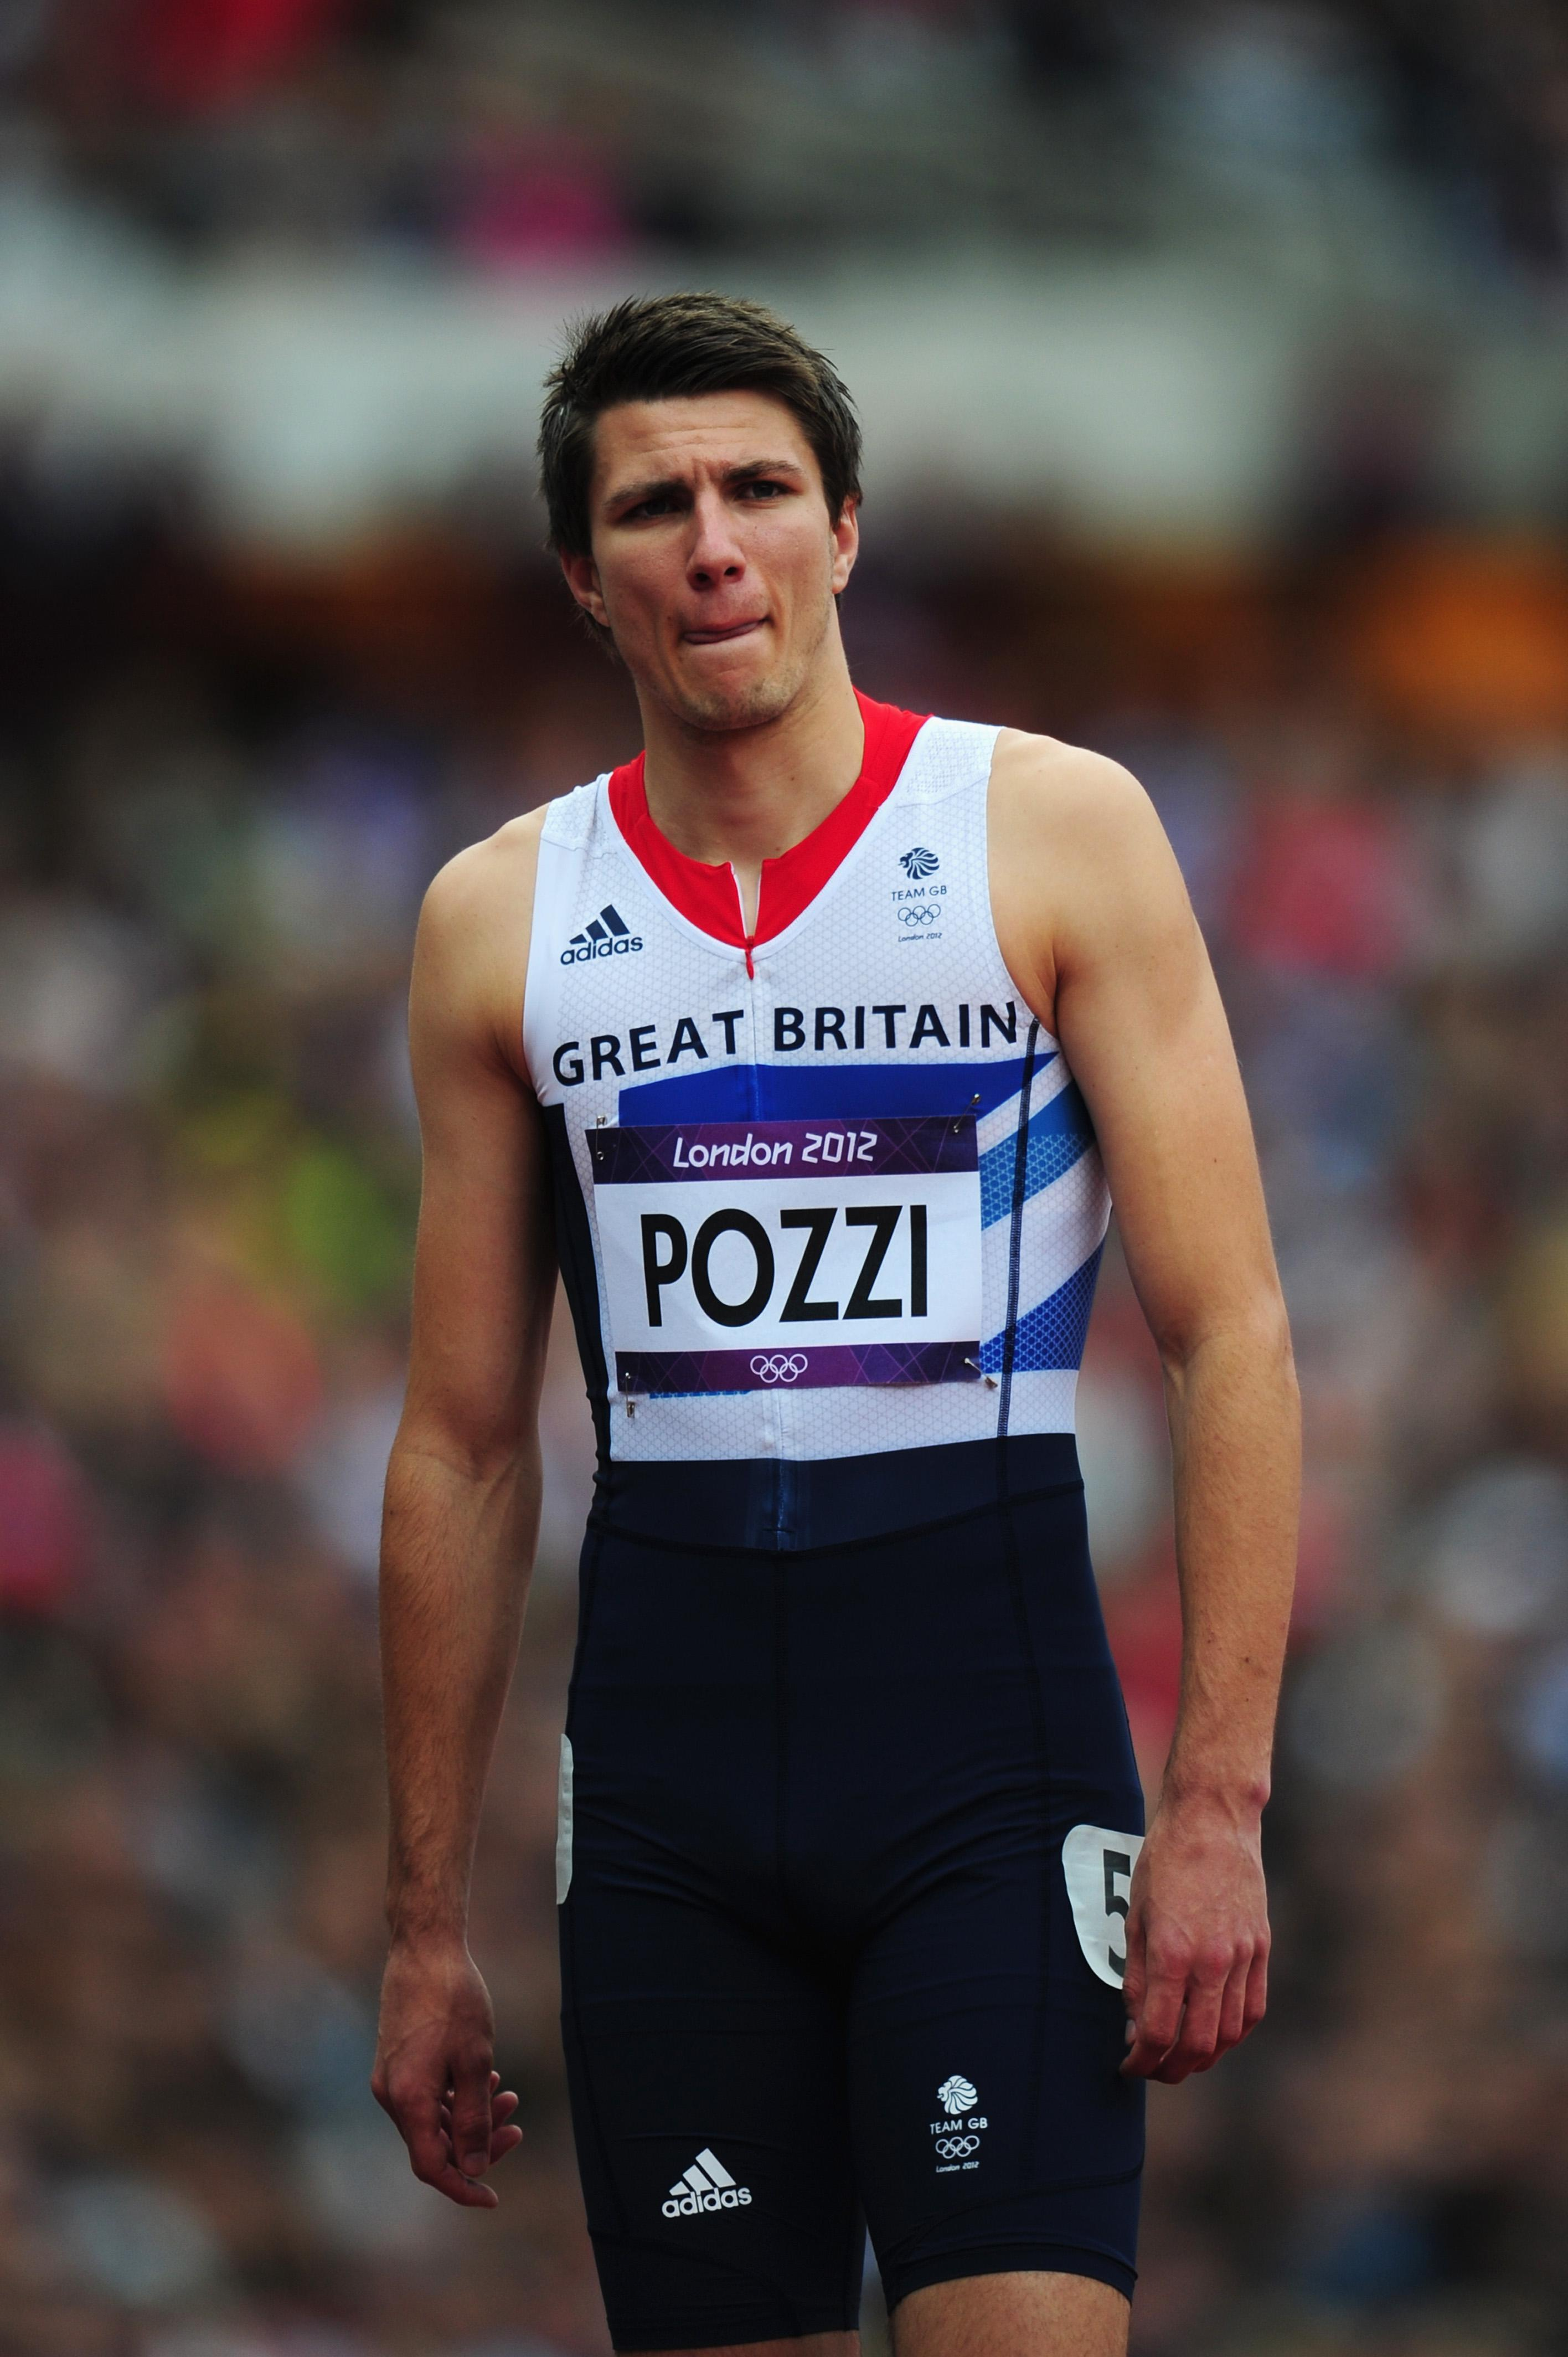 Memories of London 2012 are nothing but painful for Pozzi after injury struck him at the start